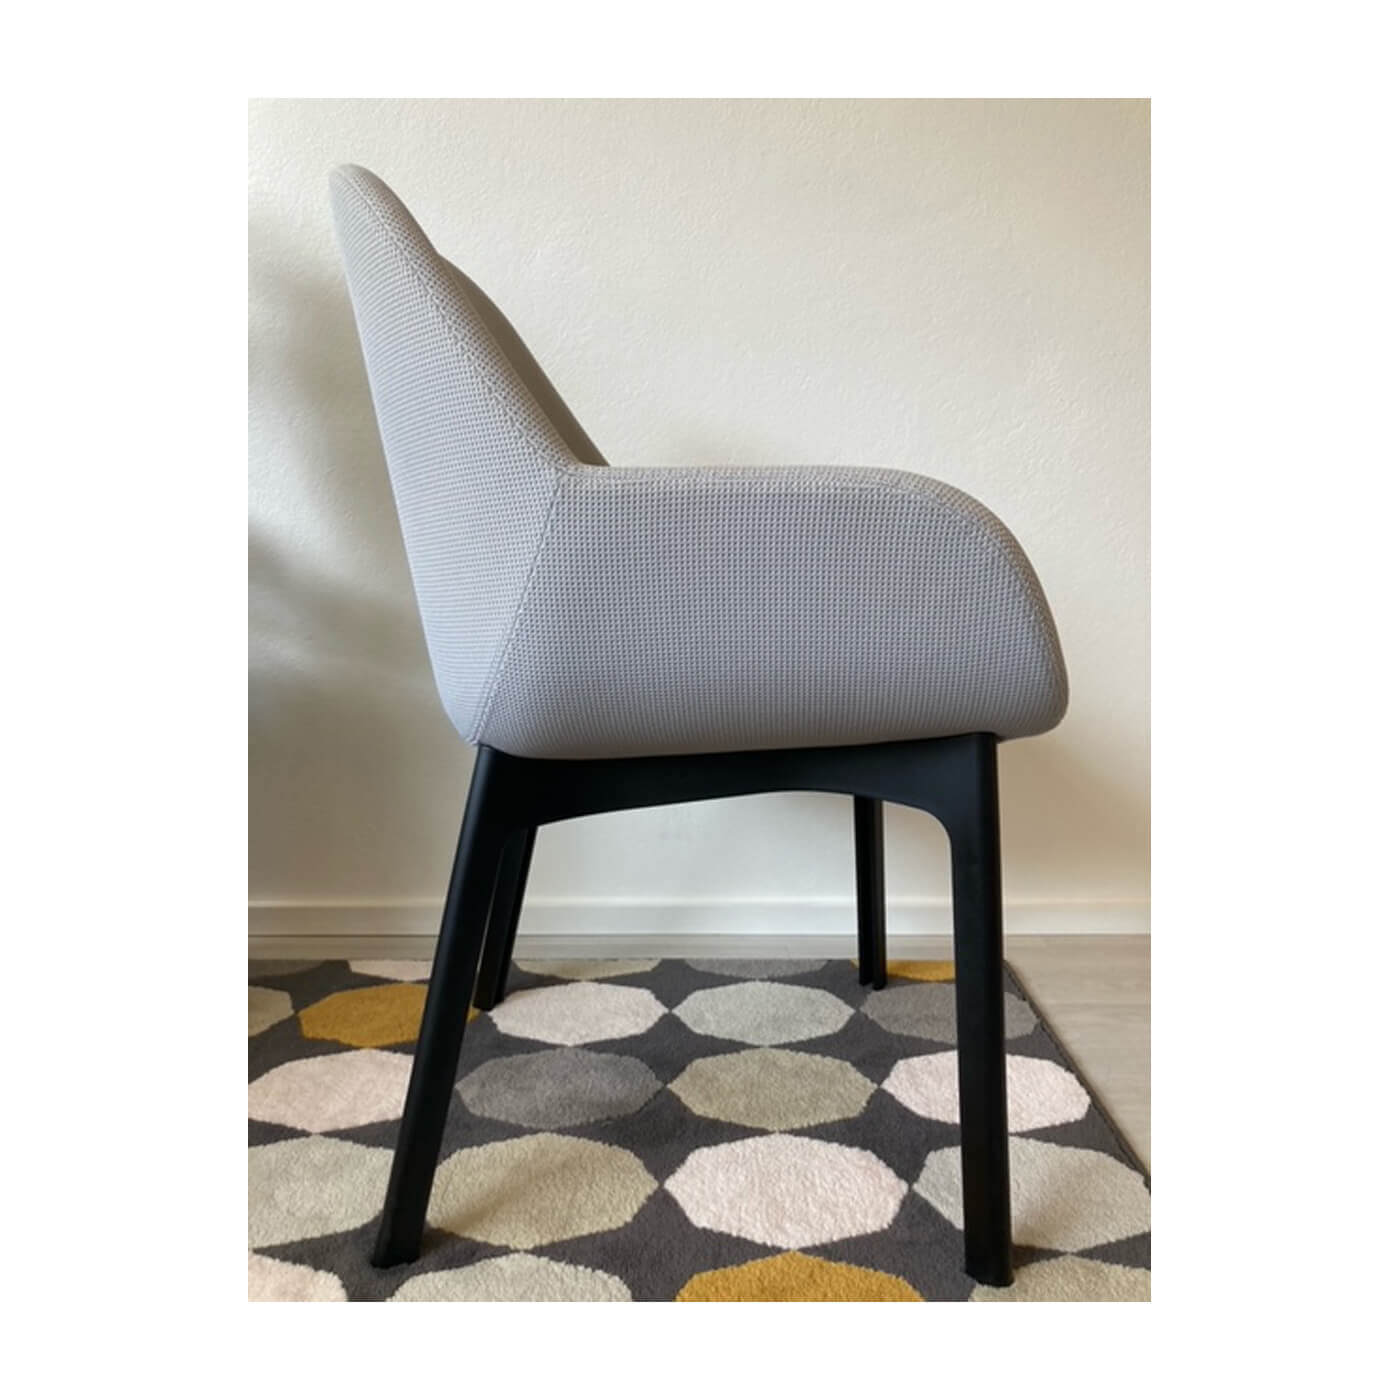 Kartell Clap chair by Patricia Urquiola set of 4